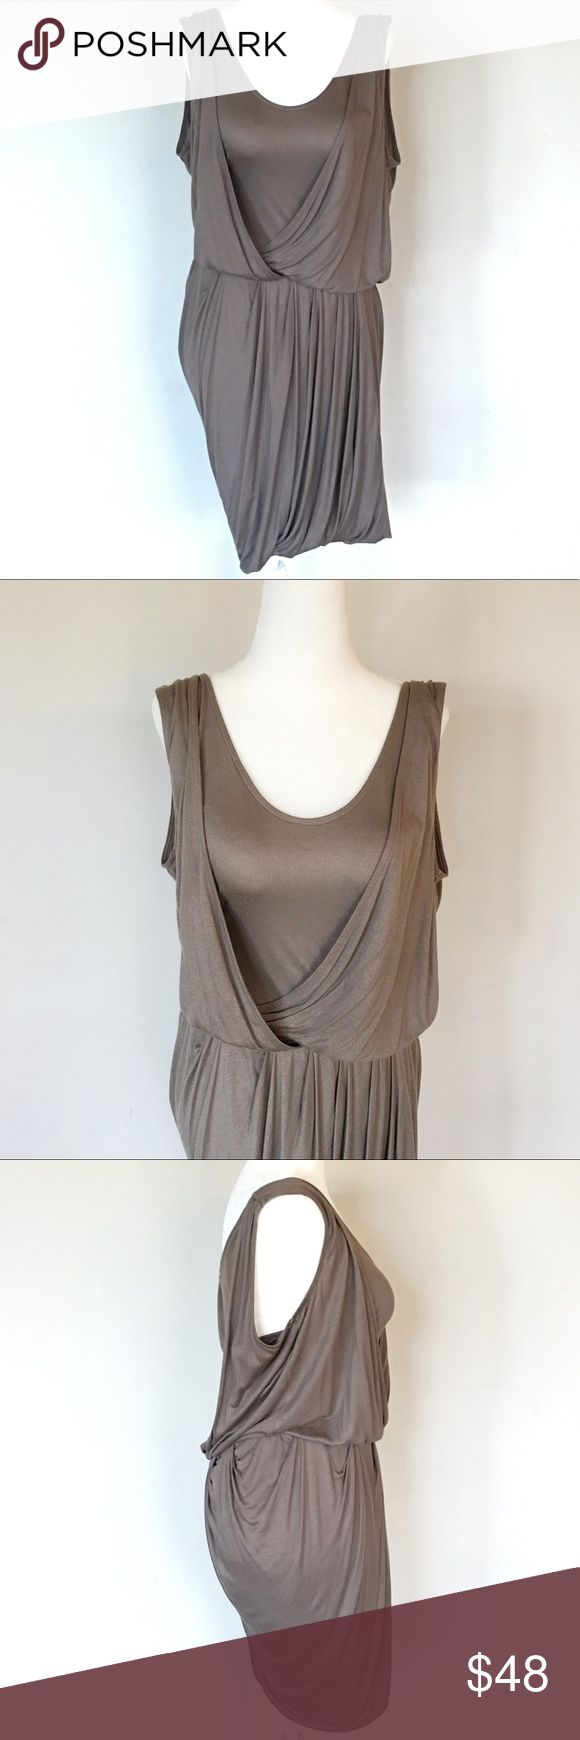 Banana Republic Drape Wrap Front Dress Beautiful Banana Republic draped front dress with polyester mesh lining olive/taupe color- best depicted in 1st photo. Top of shoulder to bottom hem measures approximately 36 inches armpit to armpit measures approximately 16 inches. Banana Republic Dresses